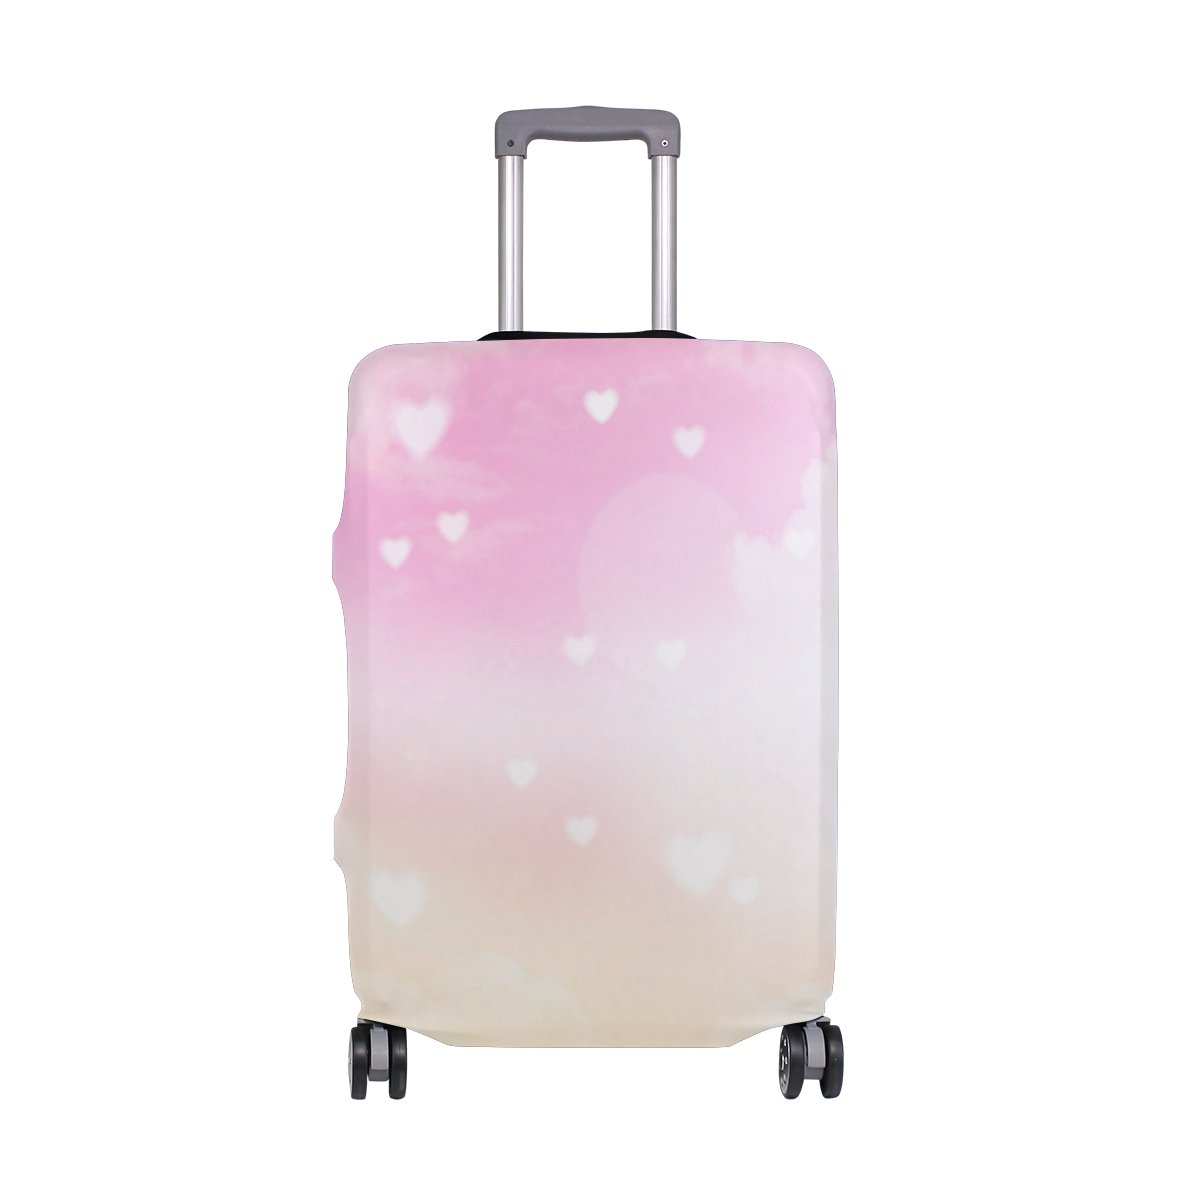 ALAZA Hearts Clouds Valentine's Day Wedding Luggage Cover Fits 28-29 Inch Suitcase Spandex Travel Protector L